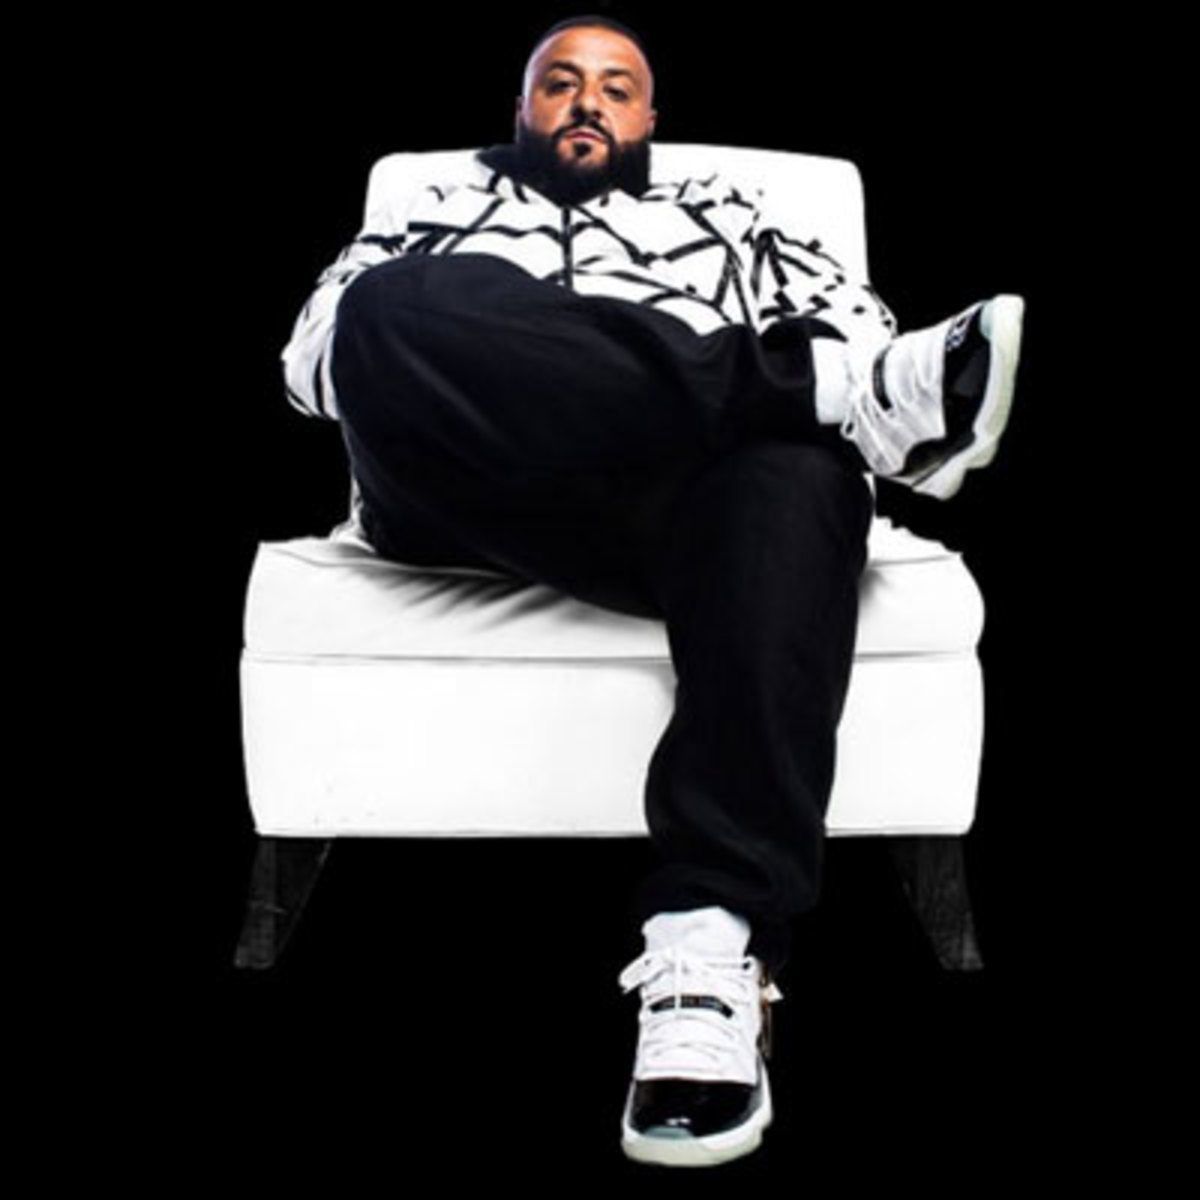 dj-khaled-by-the-numbers.jpg